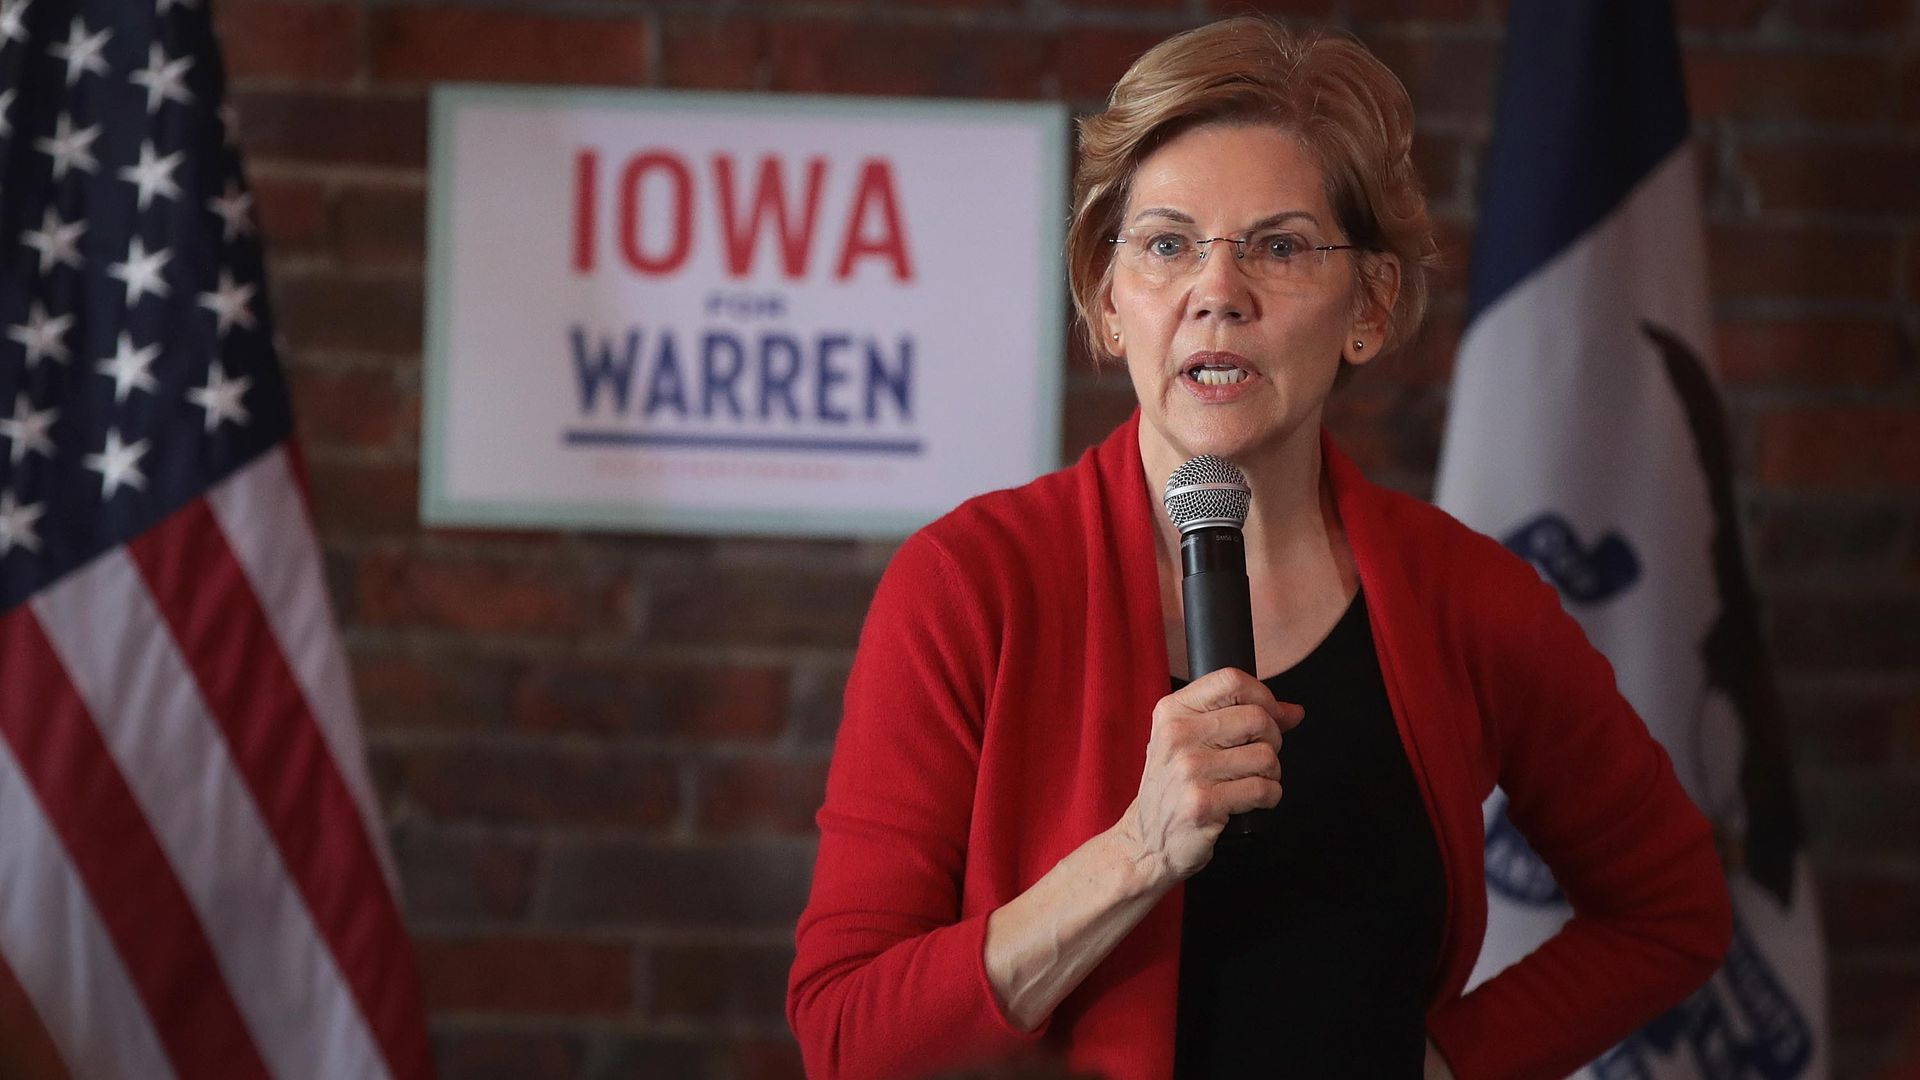 Elizabeth Warren in Iowa